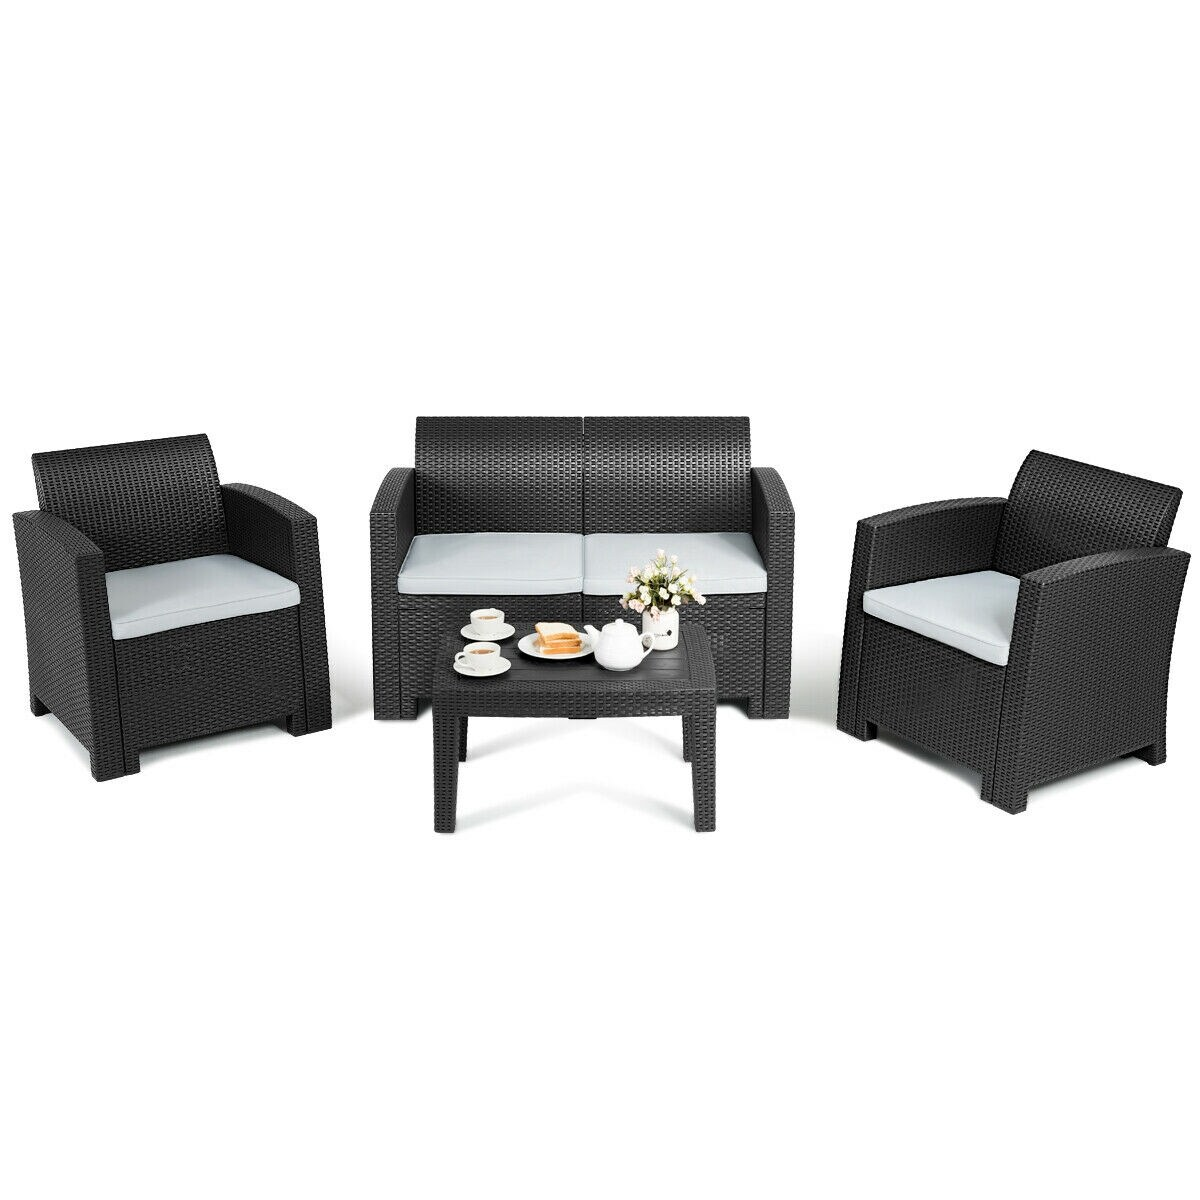 Bon Shop Gymax 4 Piece Patio Furniture Set Molded Rattan Sectional Sofa Set  Coffee Table Black   On Sale   Free Shipping Today   Overstock   28108031